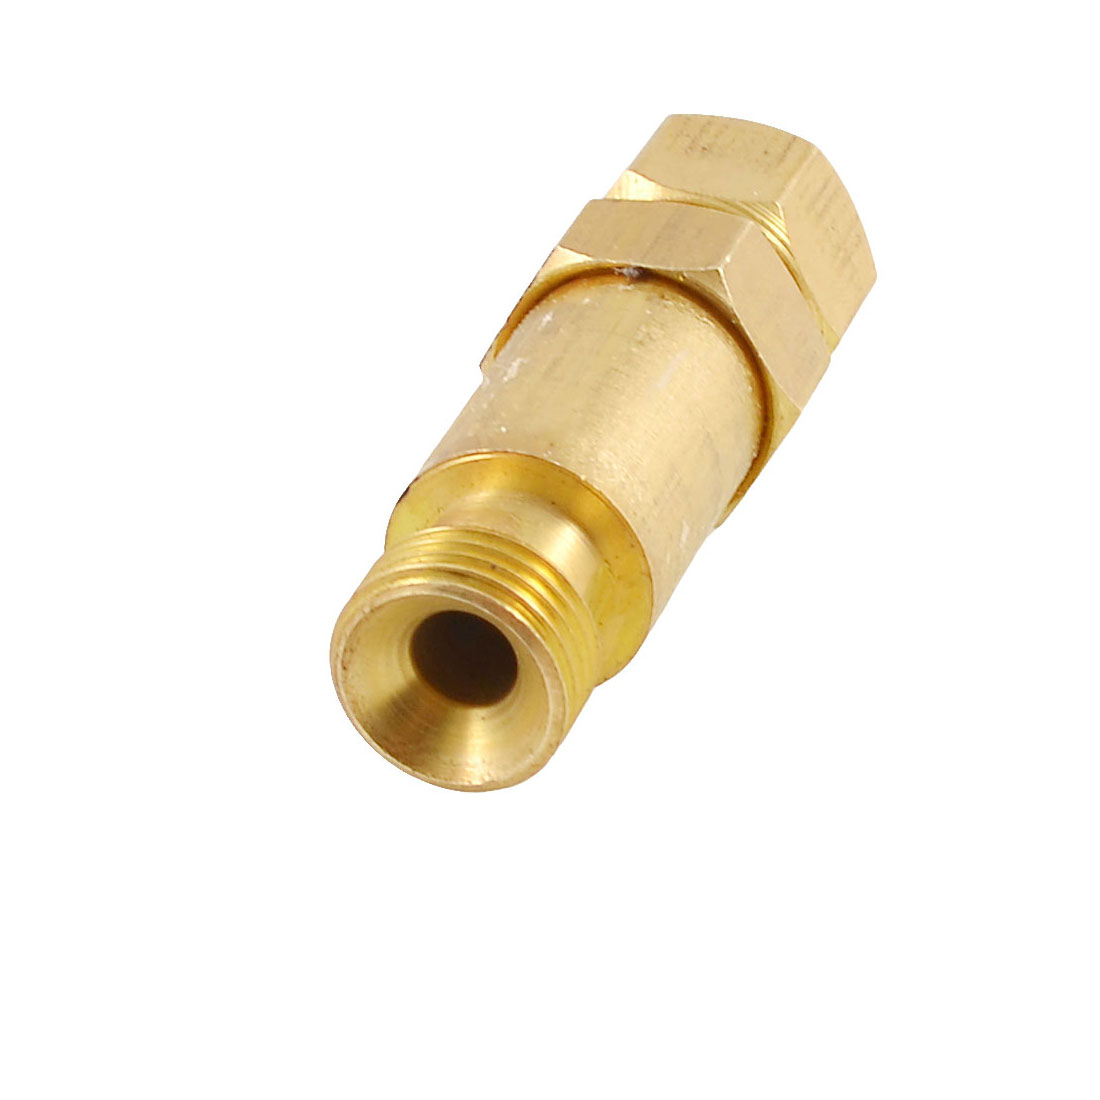 DGH Metal Flashback Arrestor Acetylene Gas Check Valve Repair Parts